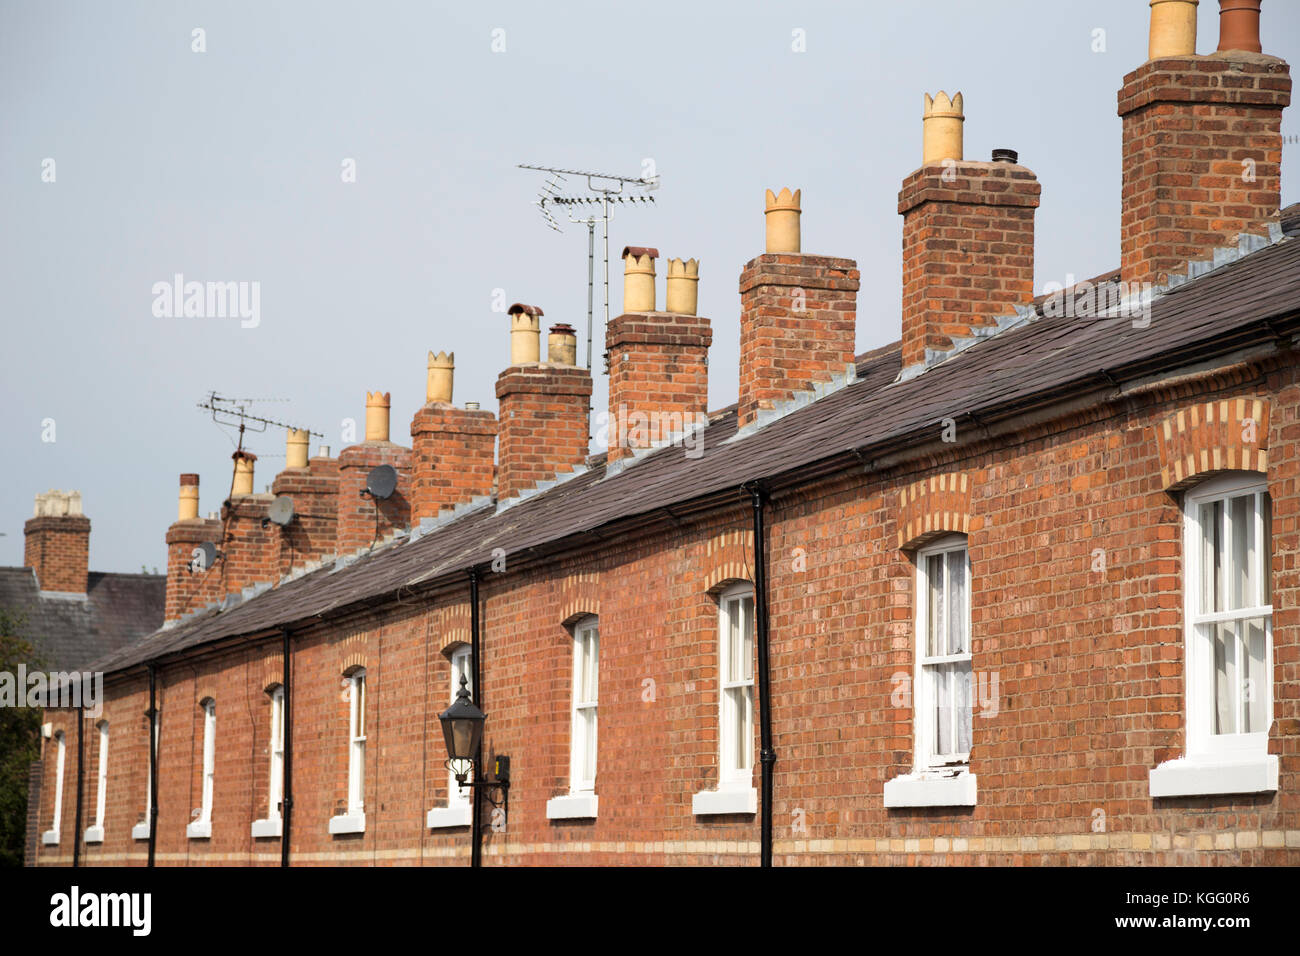 UK, Chester, identicle rooftops and houses. - Stock Image